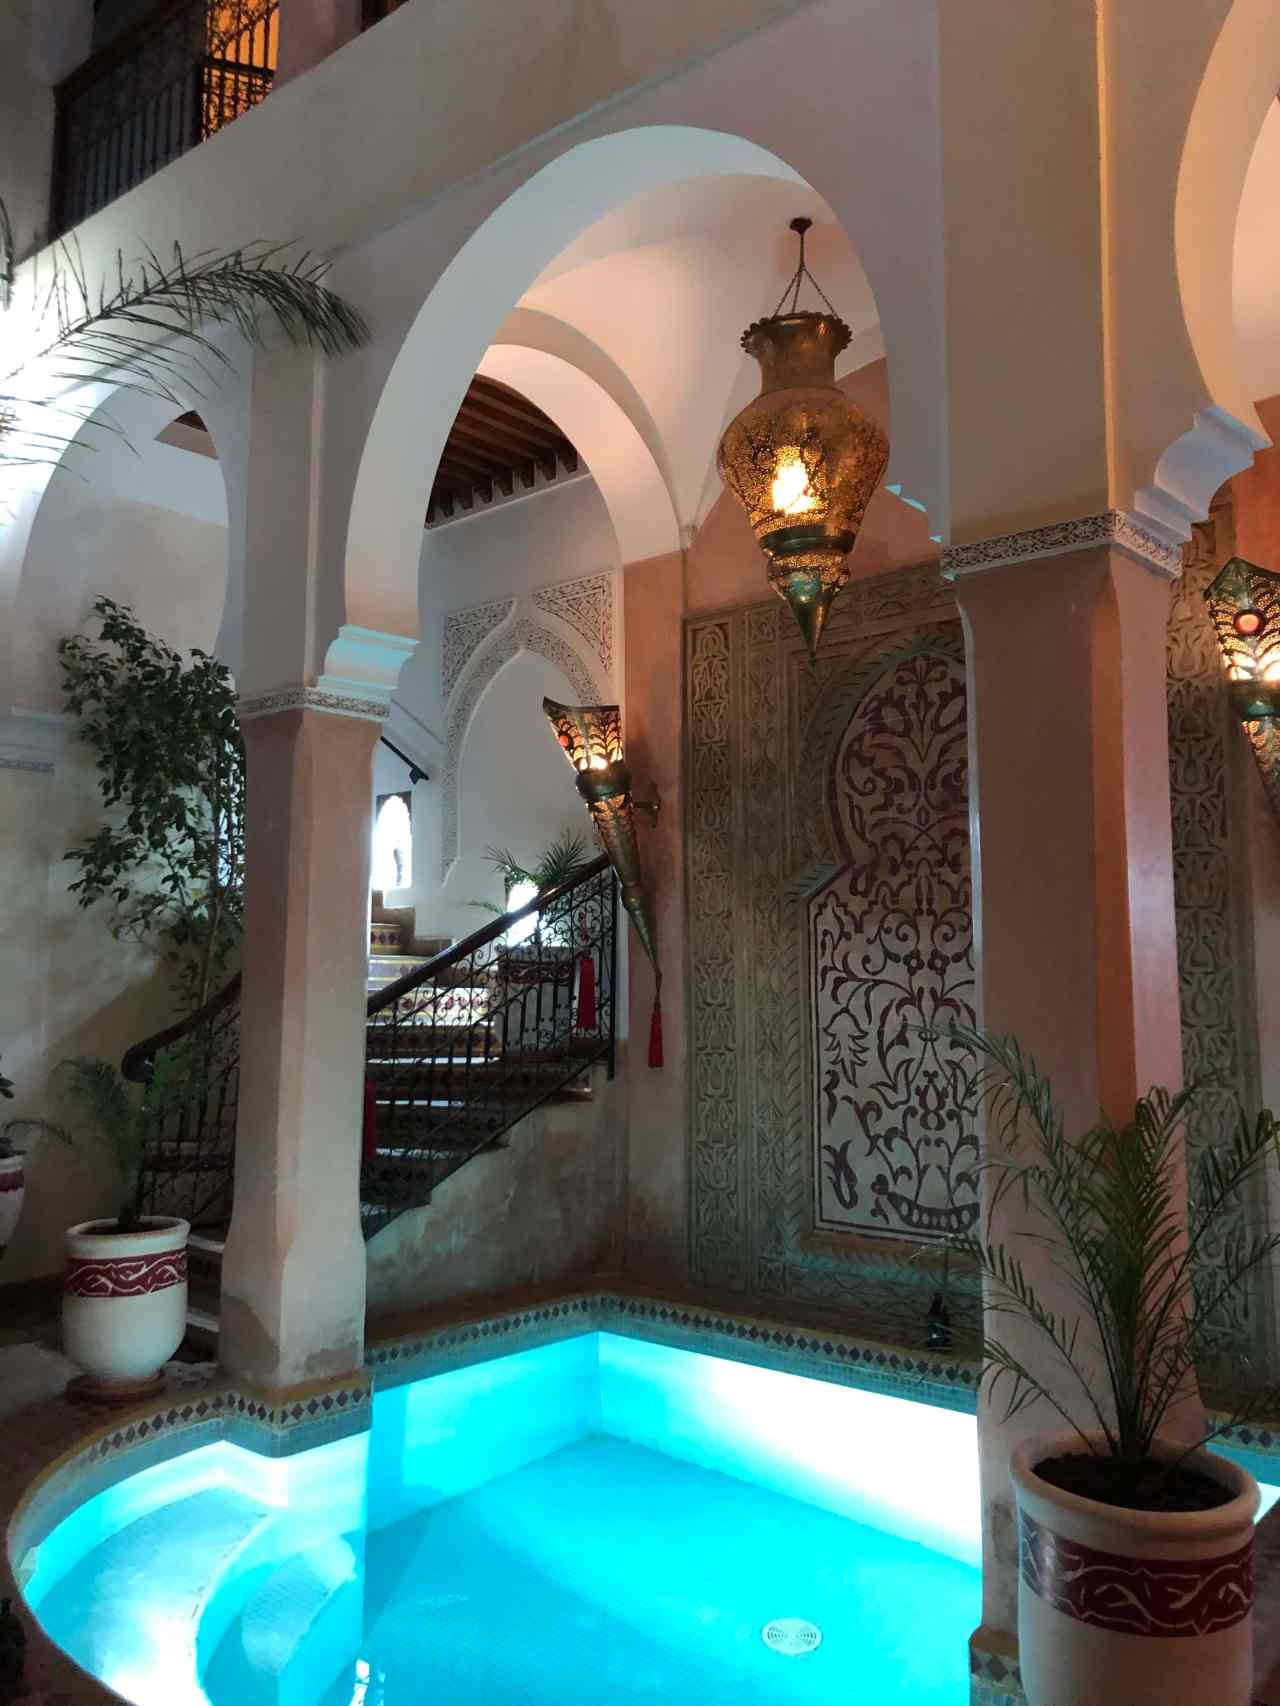 riad oumaima with pool at night in Marrakech